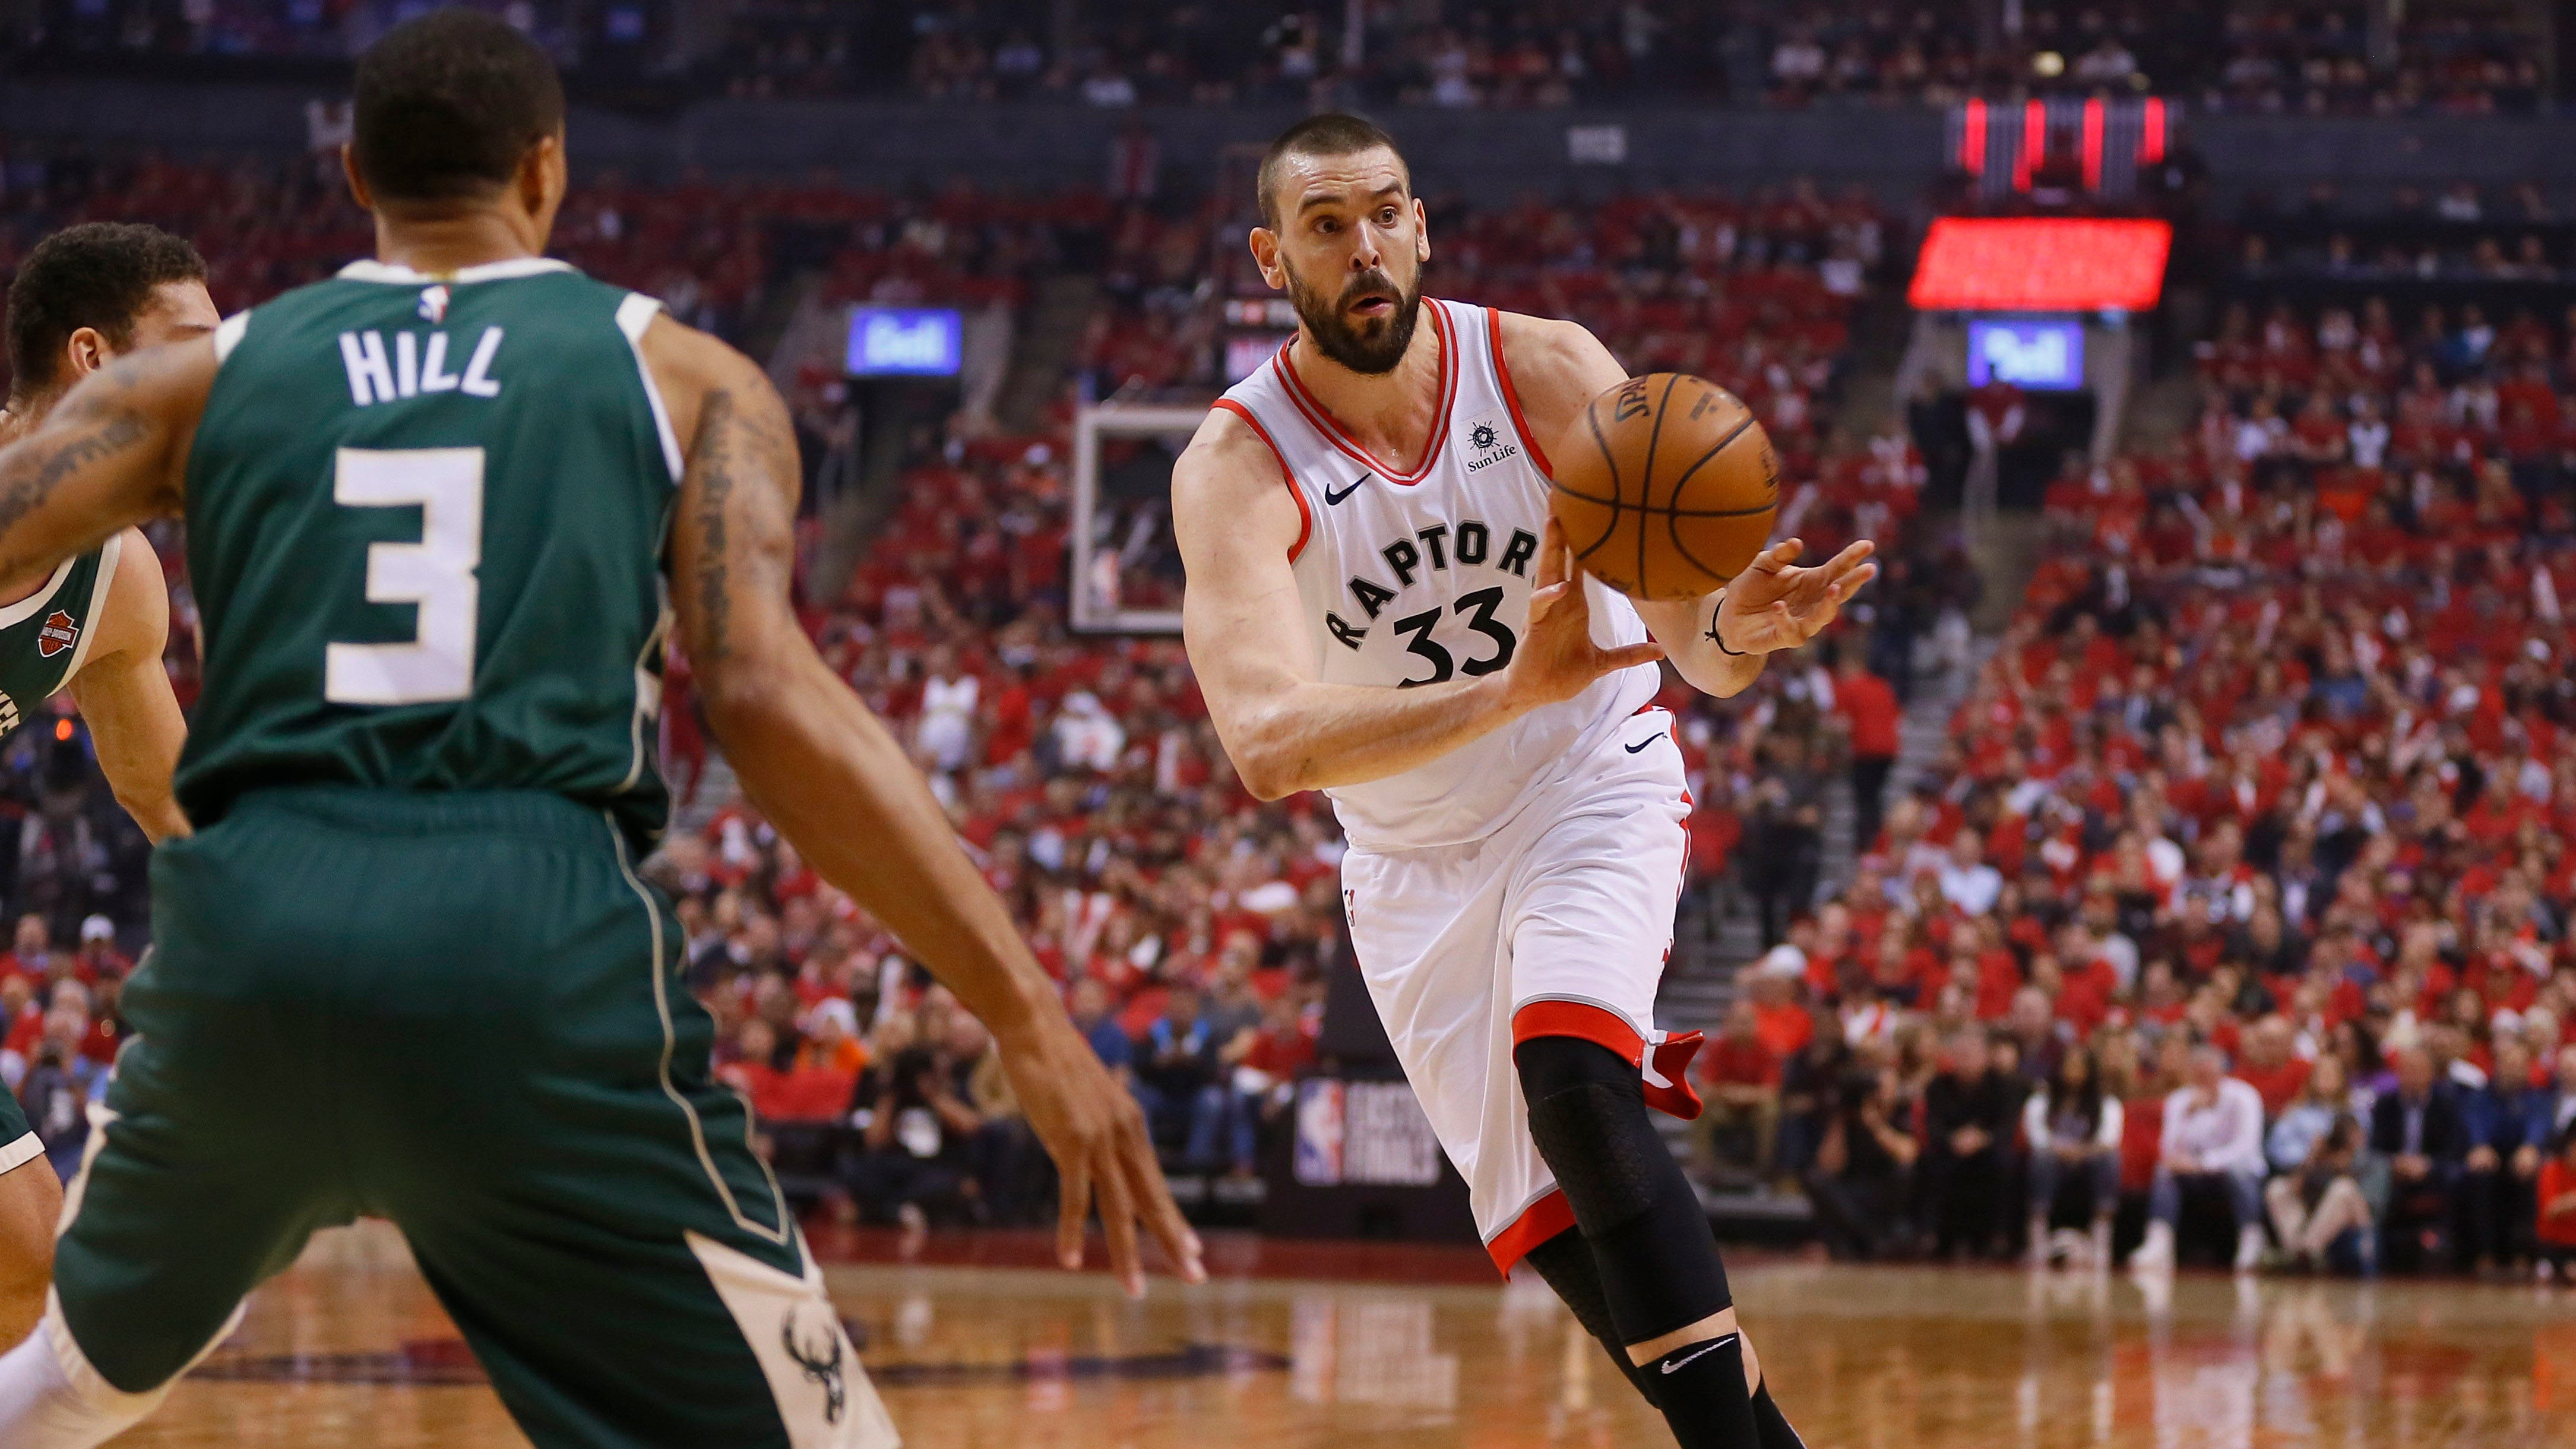 4b184b18-4aa7-4f69-ac54-7f8ff2cdf94f-usp_nba__playoffs-milwaukee_bucks_at_toronto_rapto_1